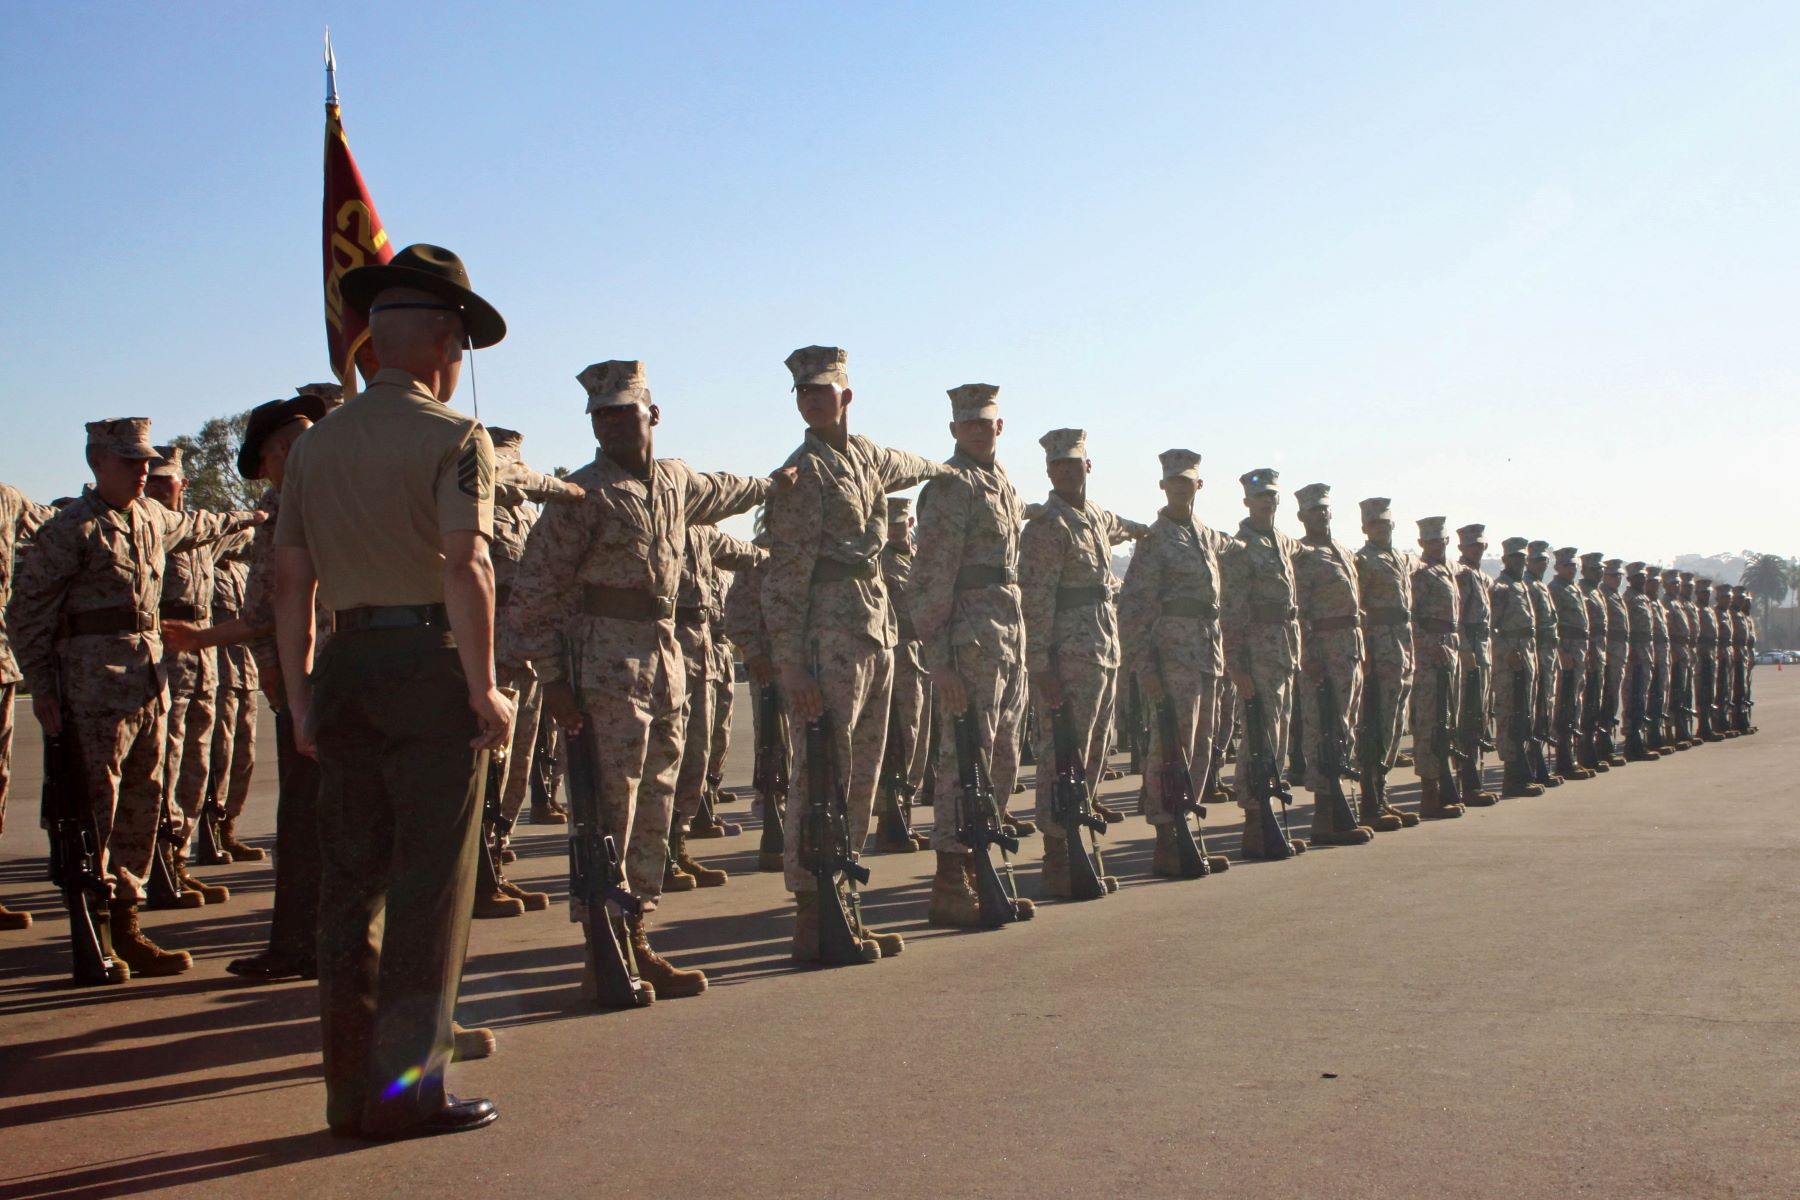 Marine Drill Instructors' 'Unacceptable' Comments About Women Must Stop, General Says